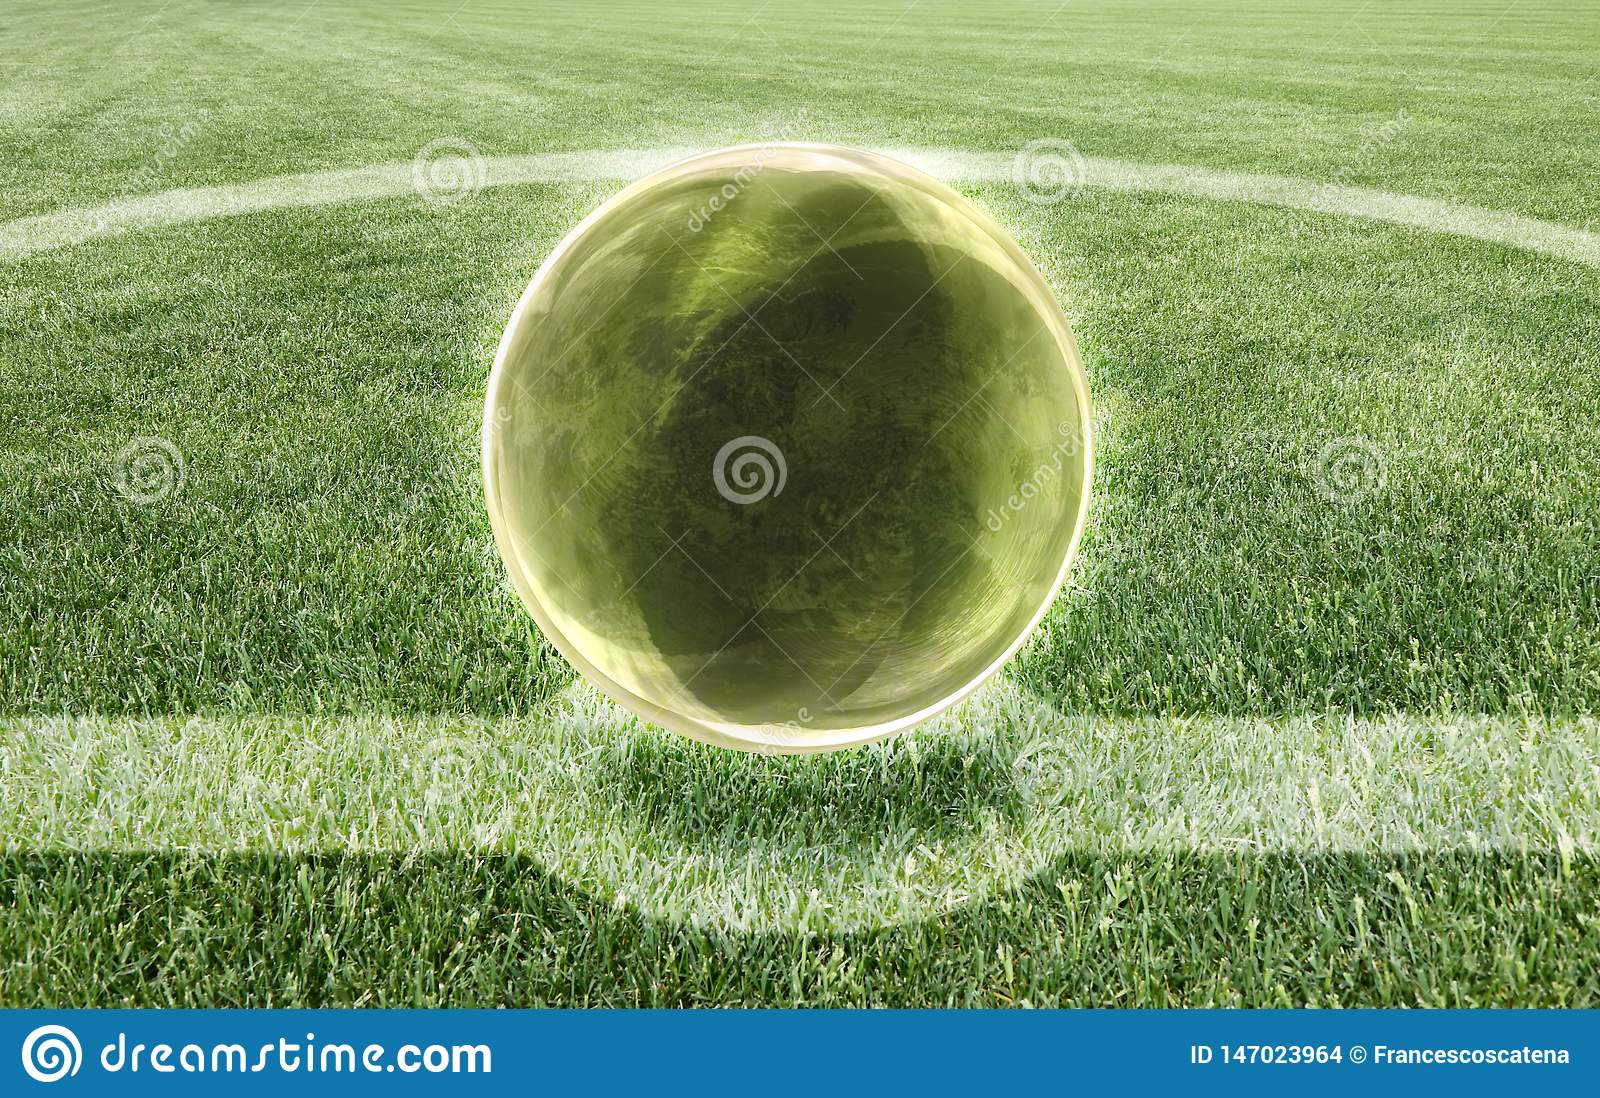 The crystal ball in the middle of a football field - Prediction of result concept image